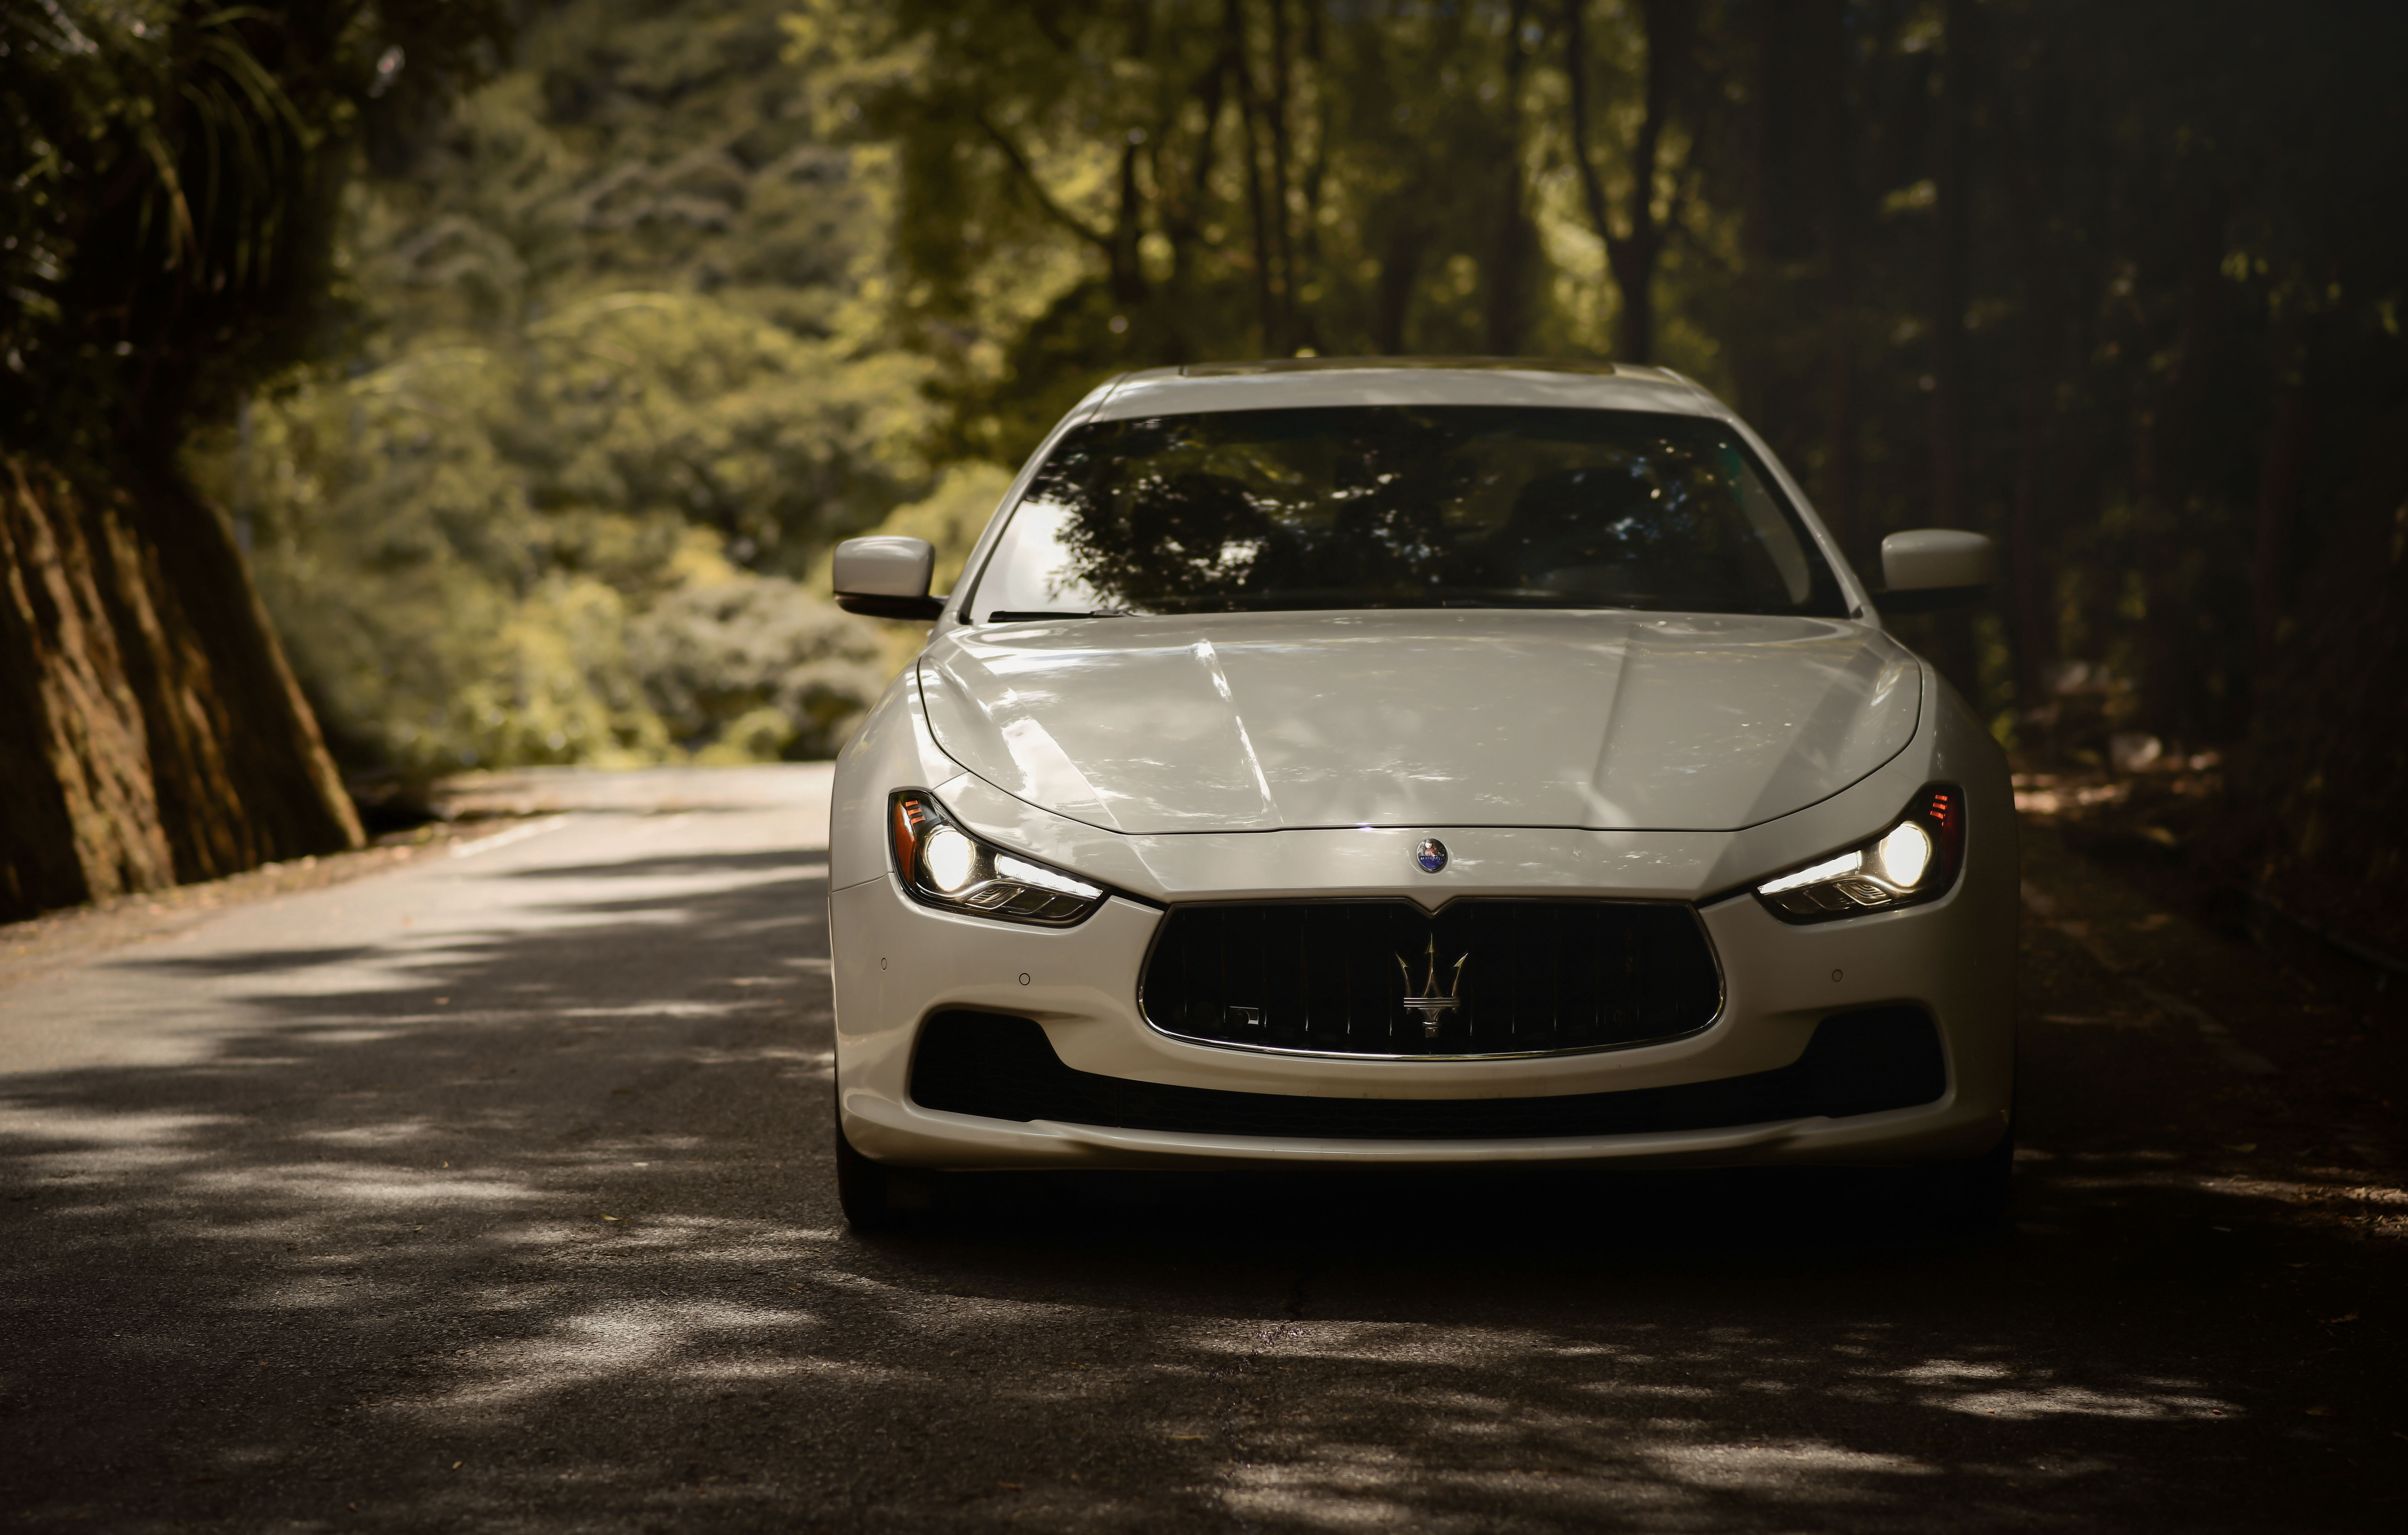 118003 download wallpaper Cars, Maserati Ghibli, Maserati, Car, Machine, Front View, Road screensavers and pictures for free